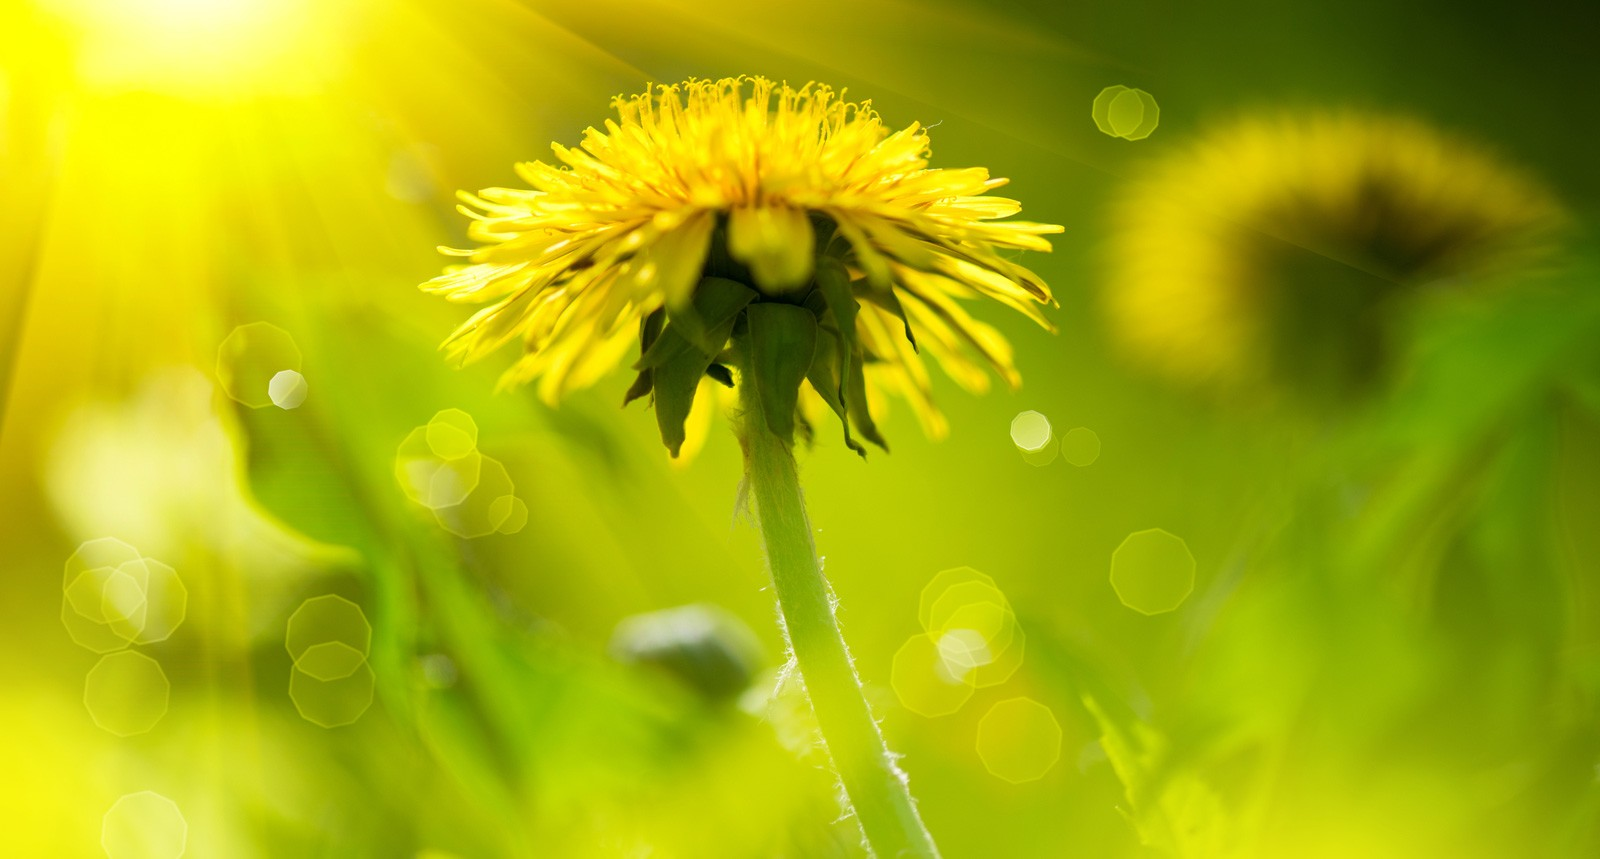 Sassy symbolic dandelion meanings on whats your sign symbolic dandelion meanings mightylinksfo